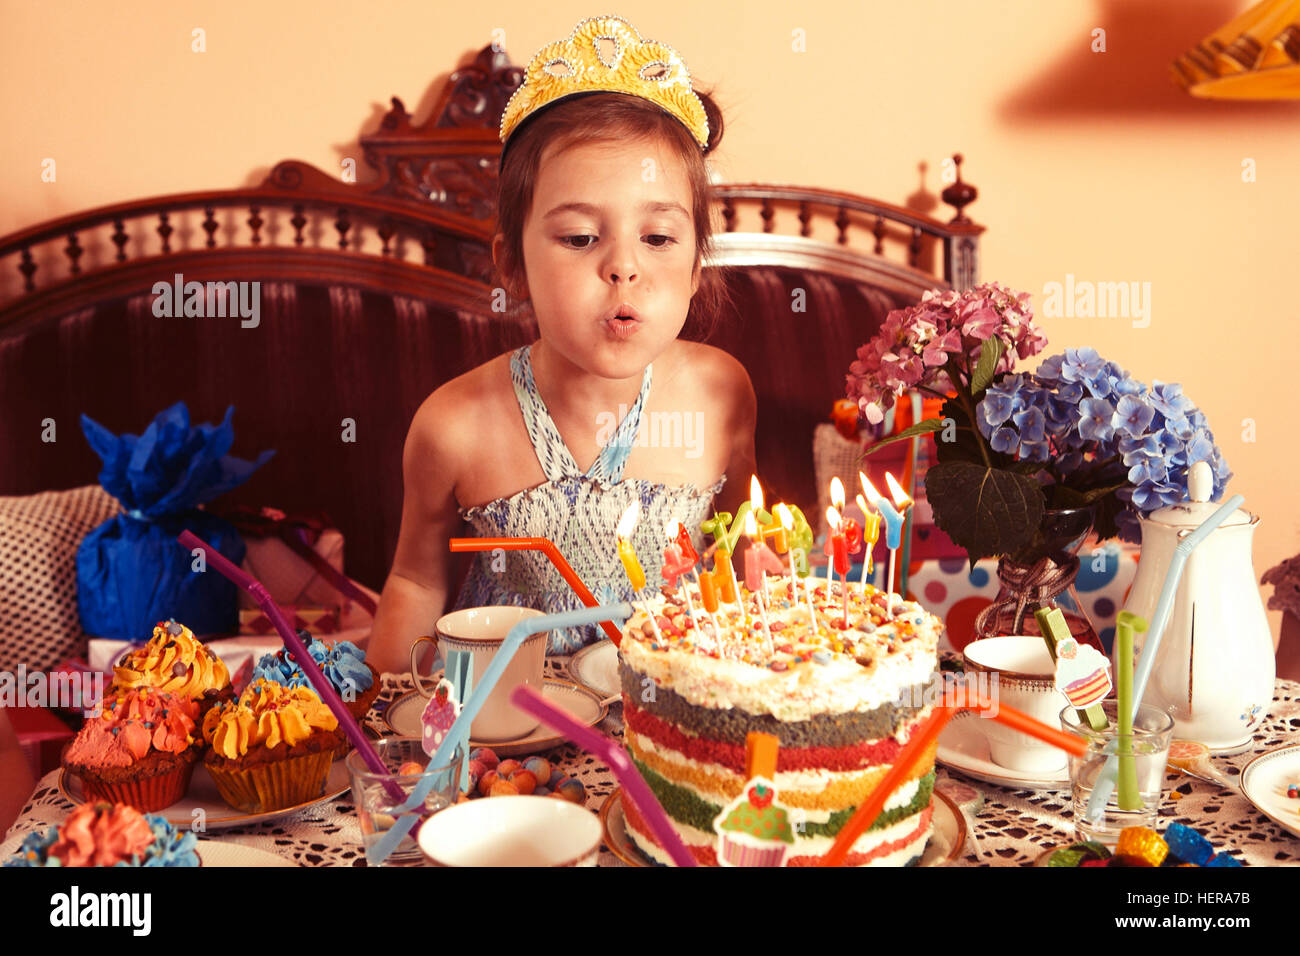 Party Girl Blows Out Candles On Her Birthday Cake Stock